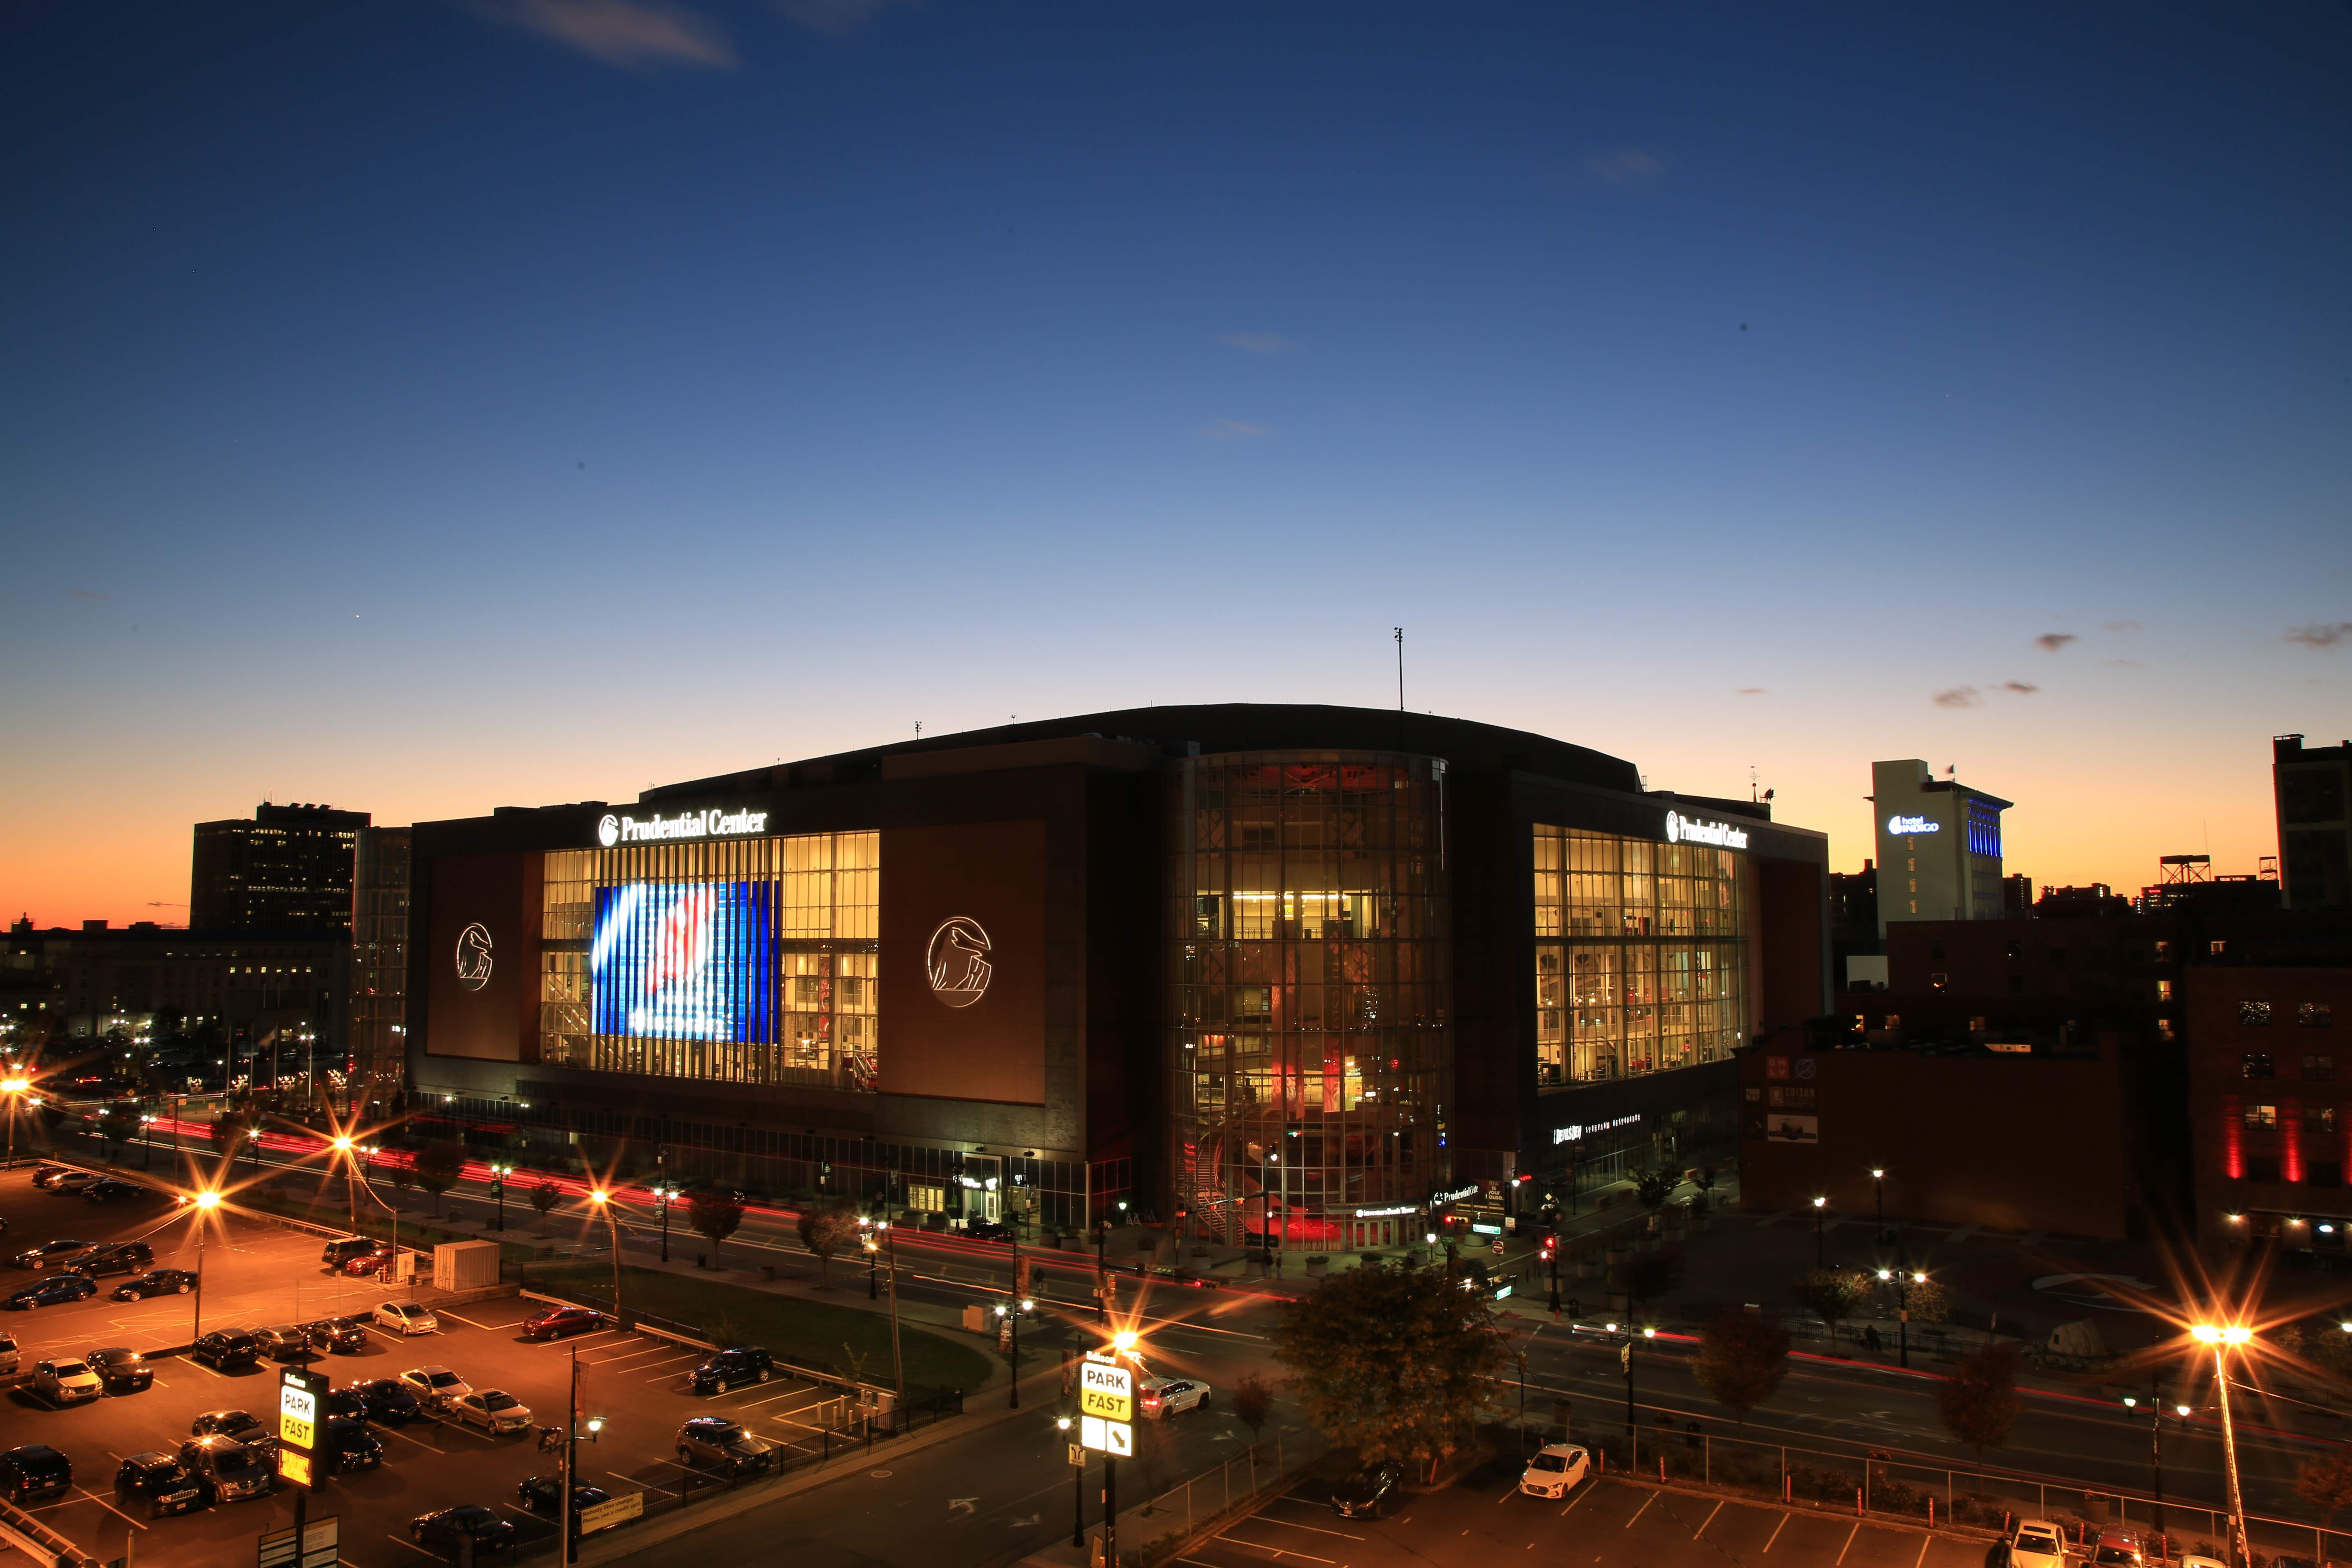 The exterior of Newark's Prudential Center.